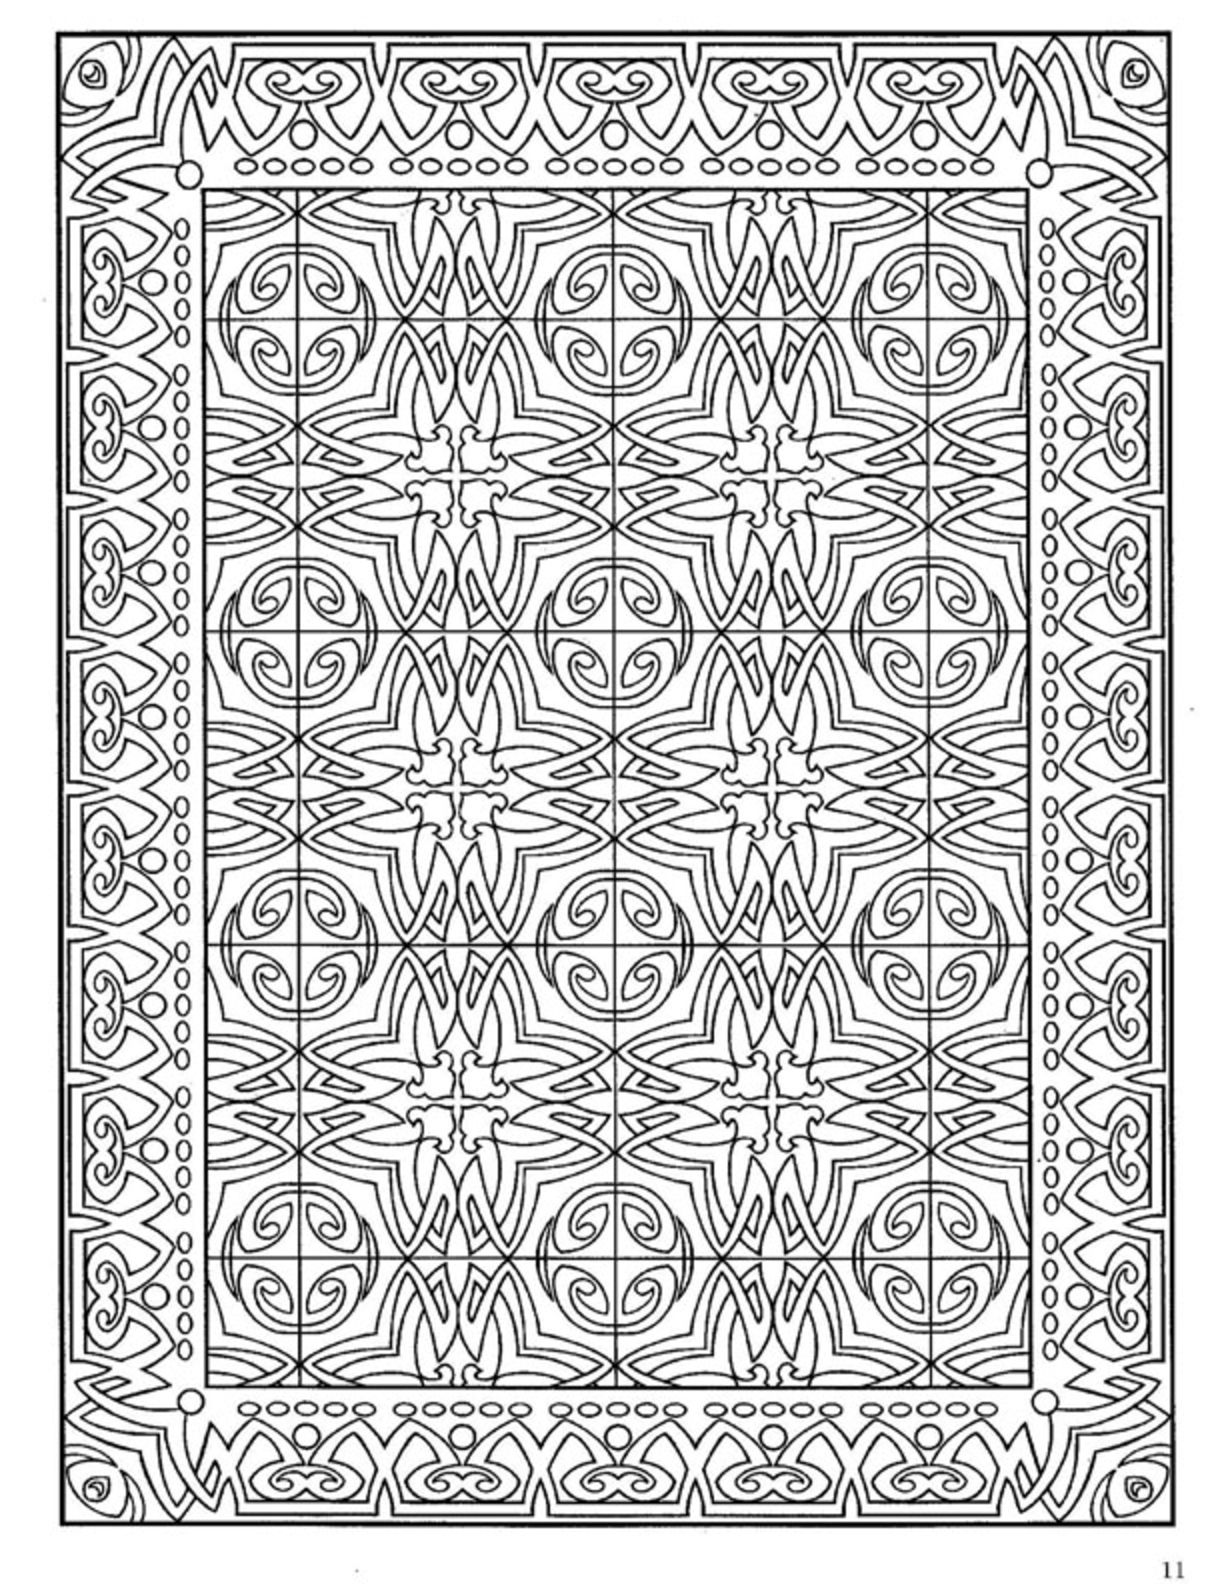 Dover Decorative Tile Coloring Book | Dover Coloring ... - photo#25